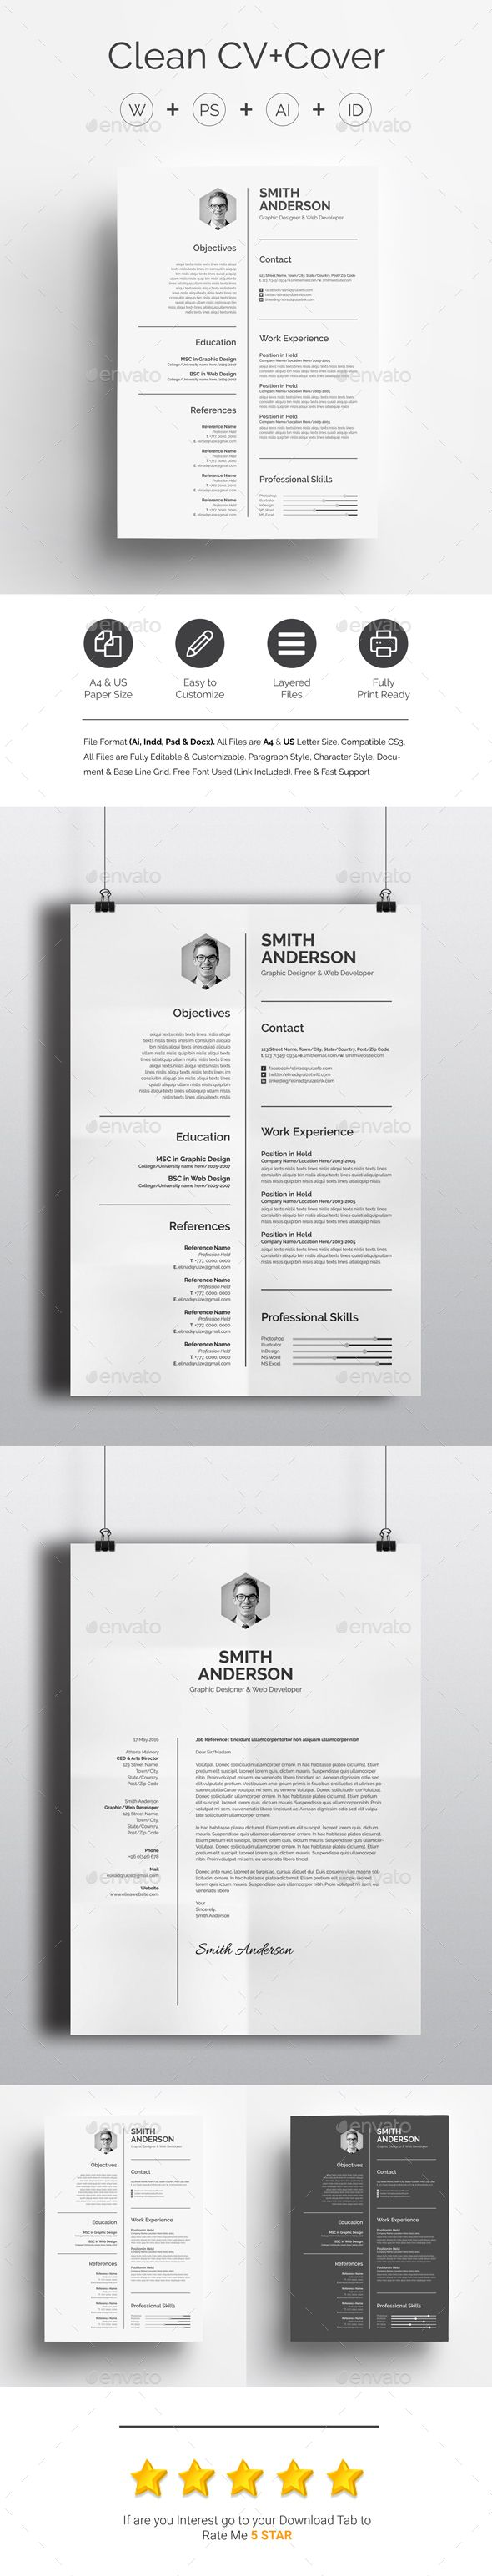 best ideas about resume cv curriculum cv design professional modern resume template for ms word cv template for word resume template for word editable instant digital